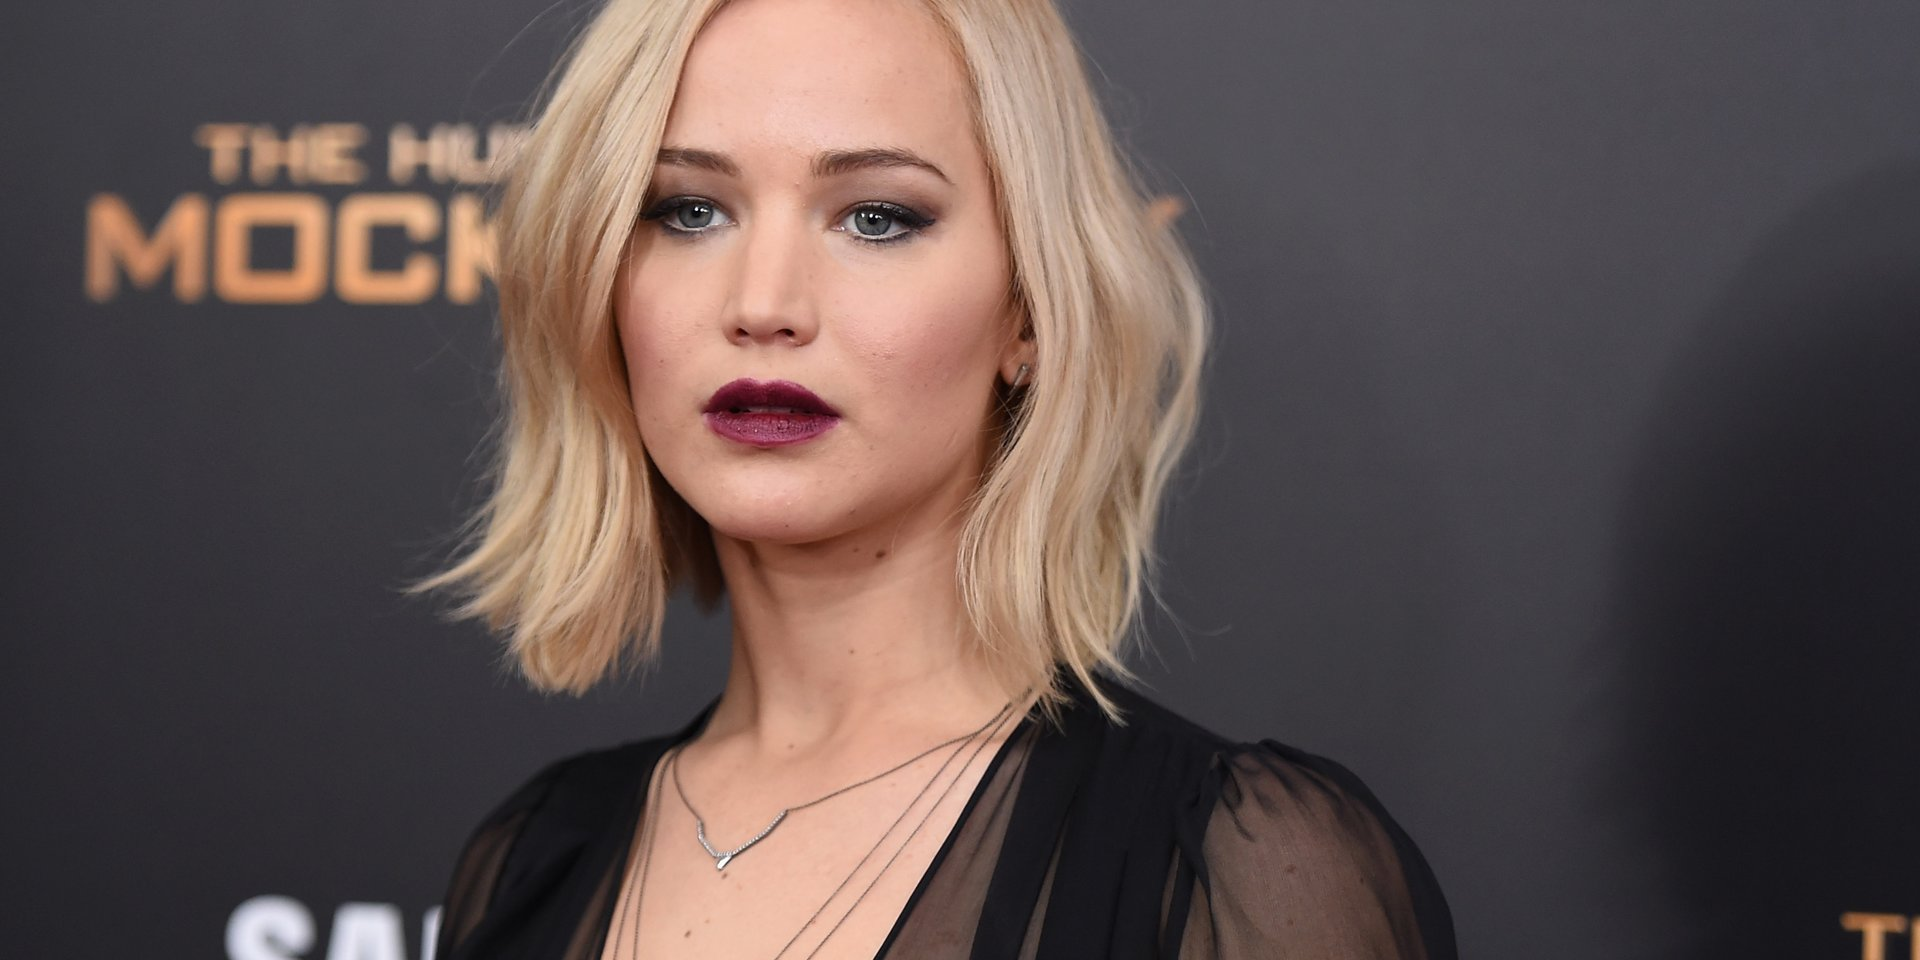 Jennifer Lawrence will star in true-crime mafia movie 'Mob Girl,' as she tries to rebound from a string of major flops